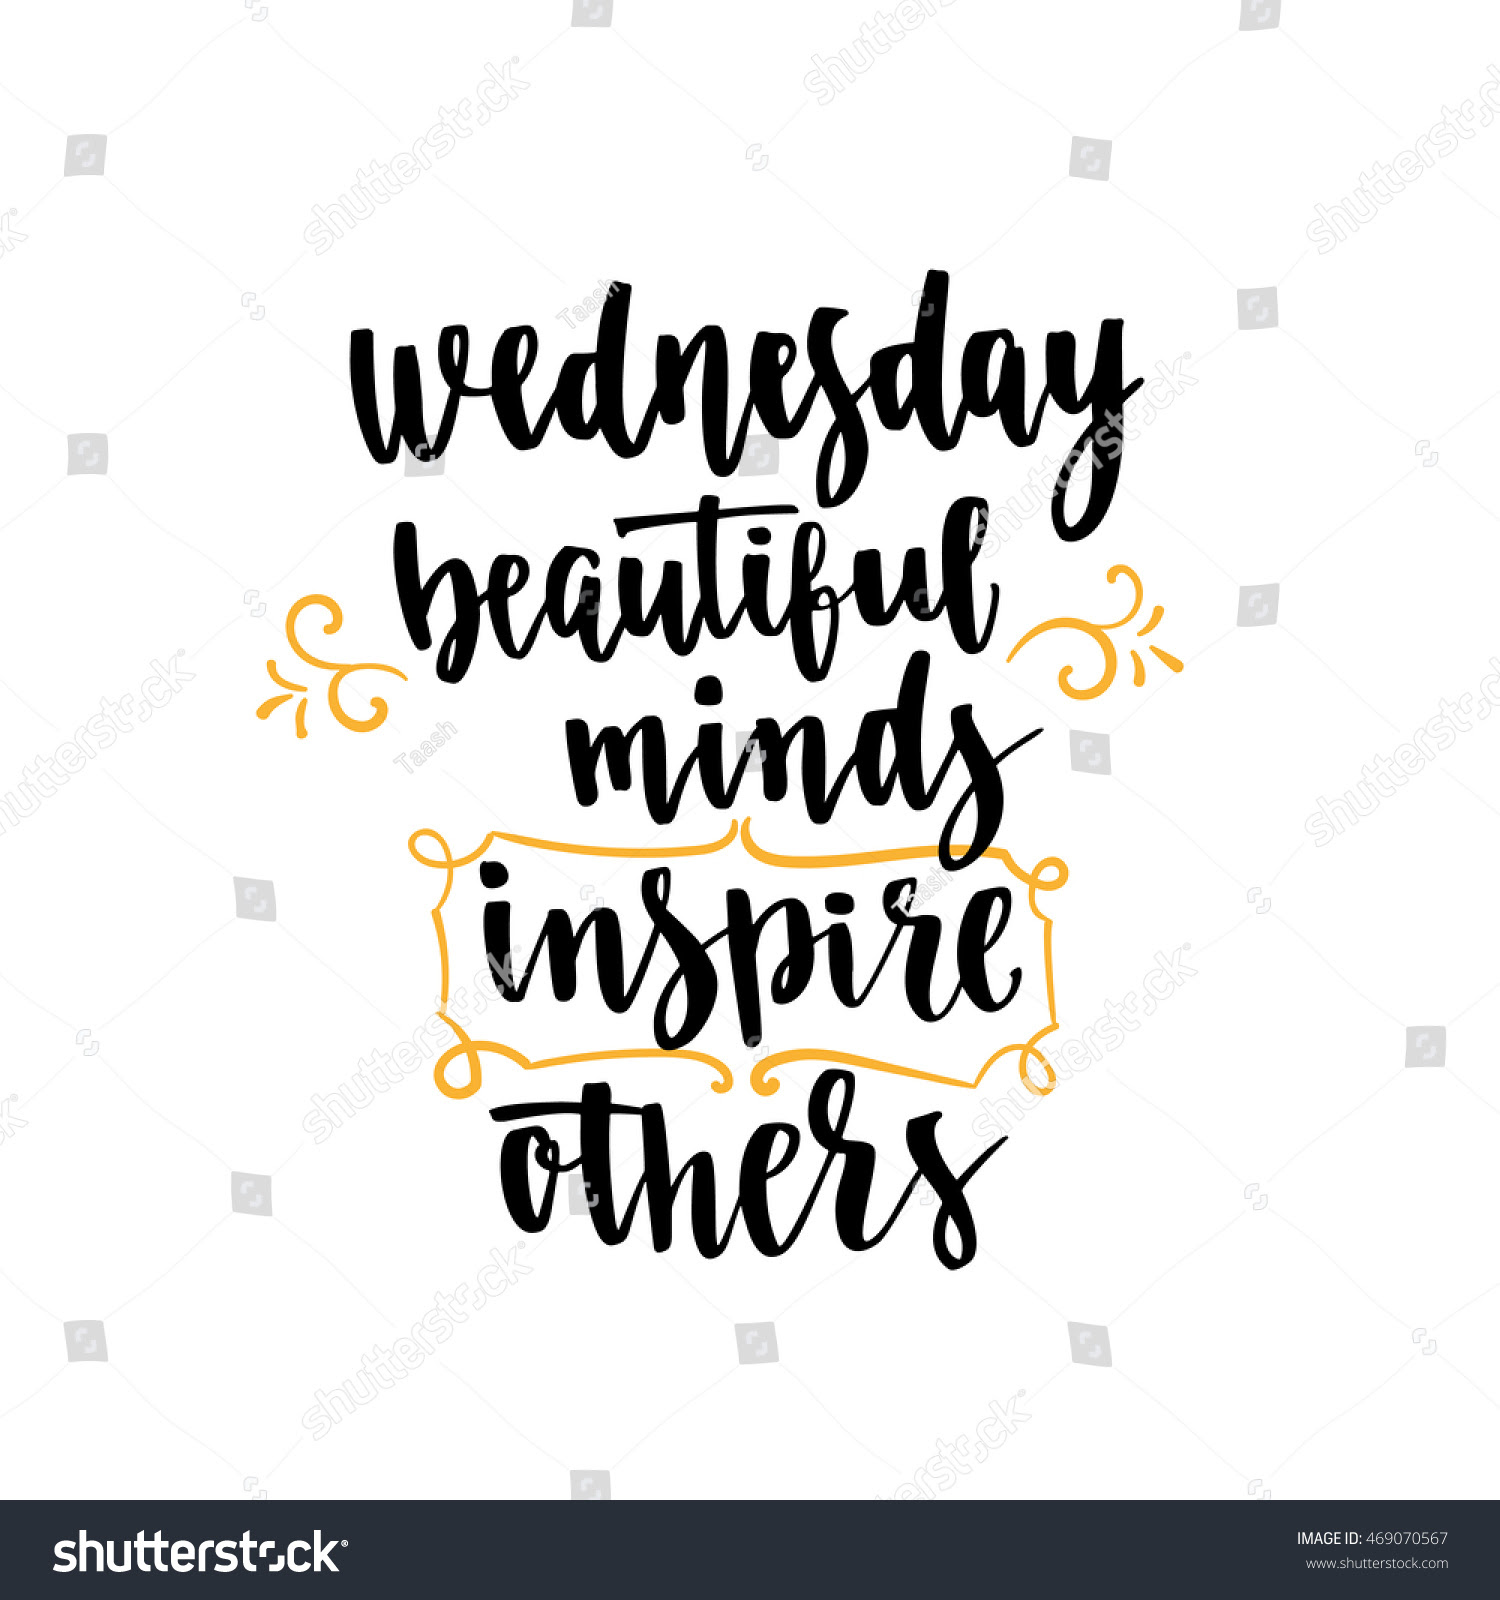 Week Days Motivation Quotes Wednesday Vector Stock Vector ...